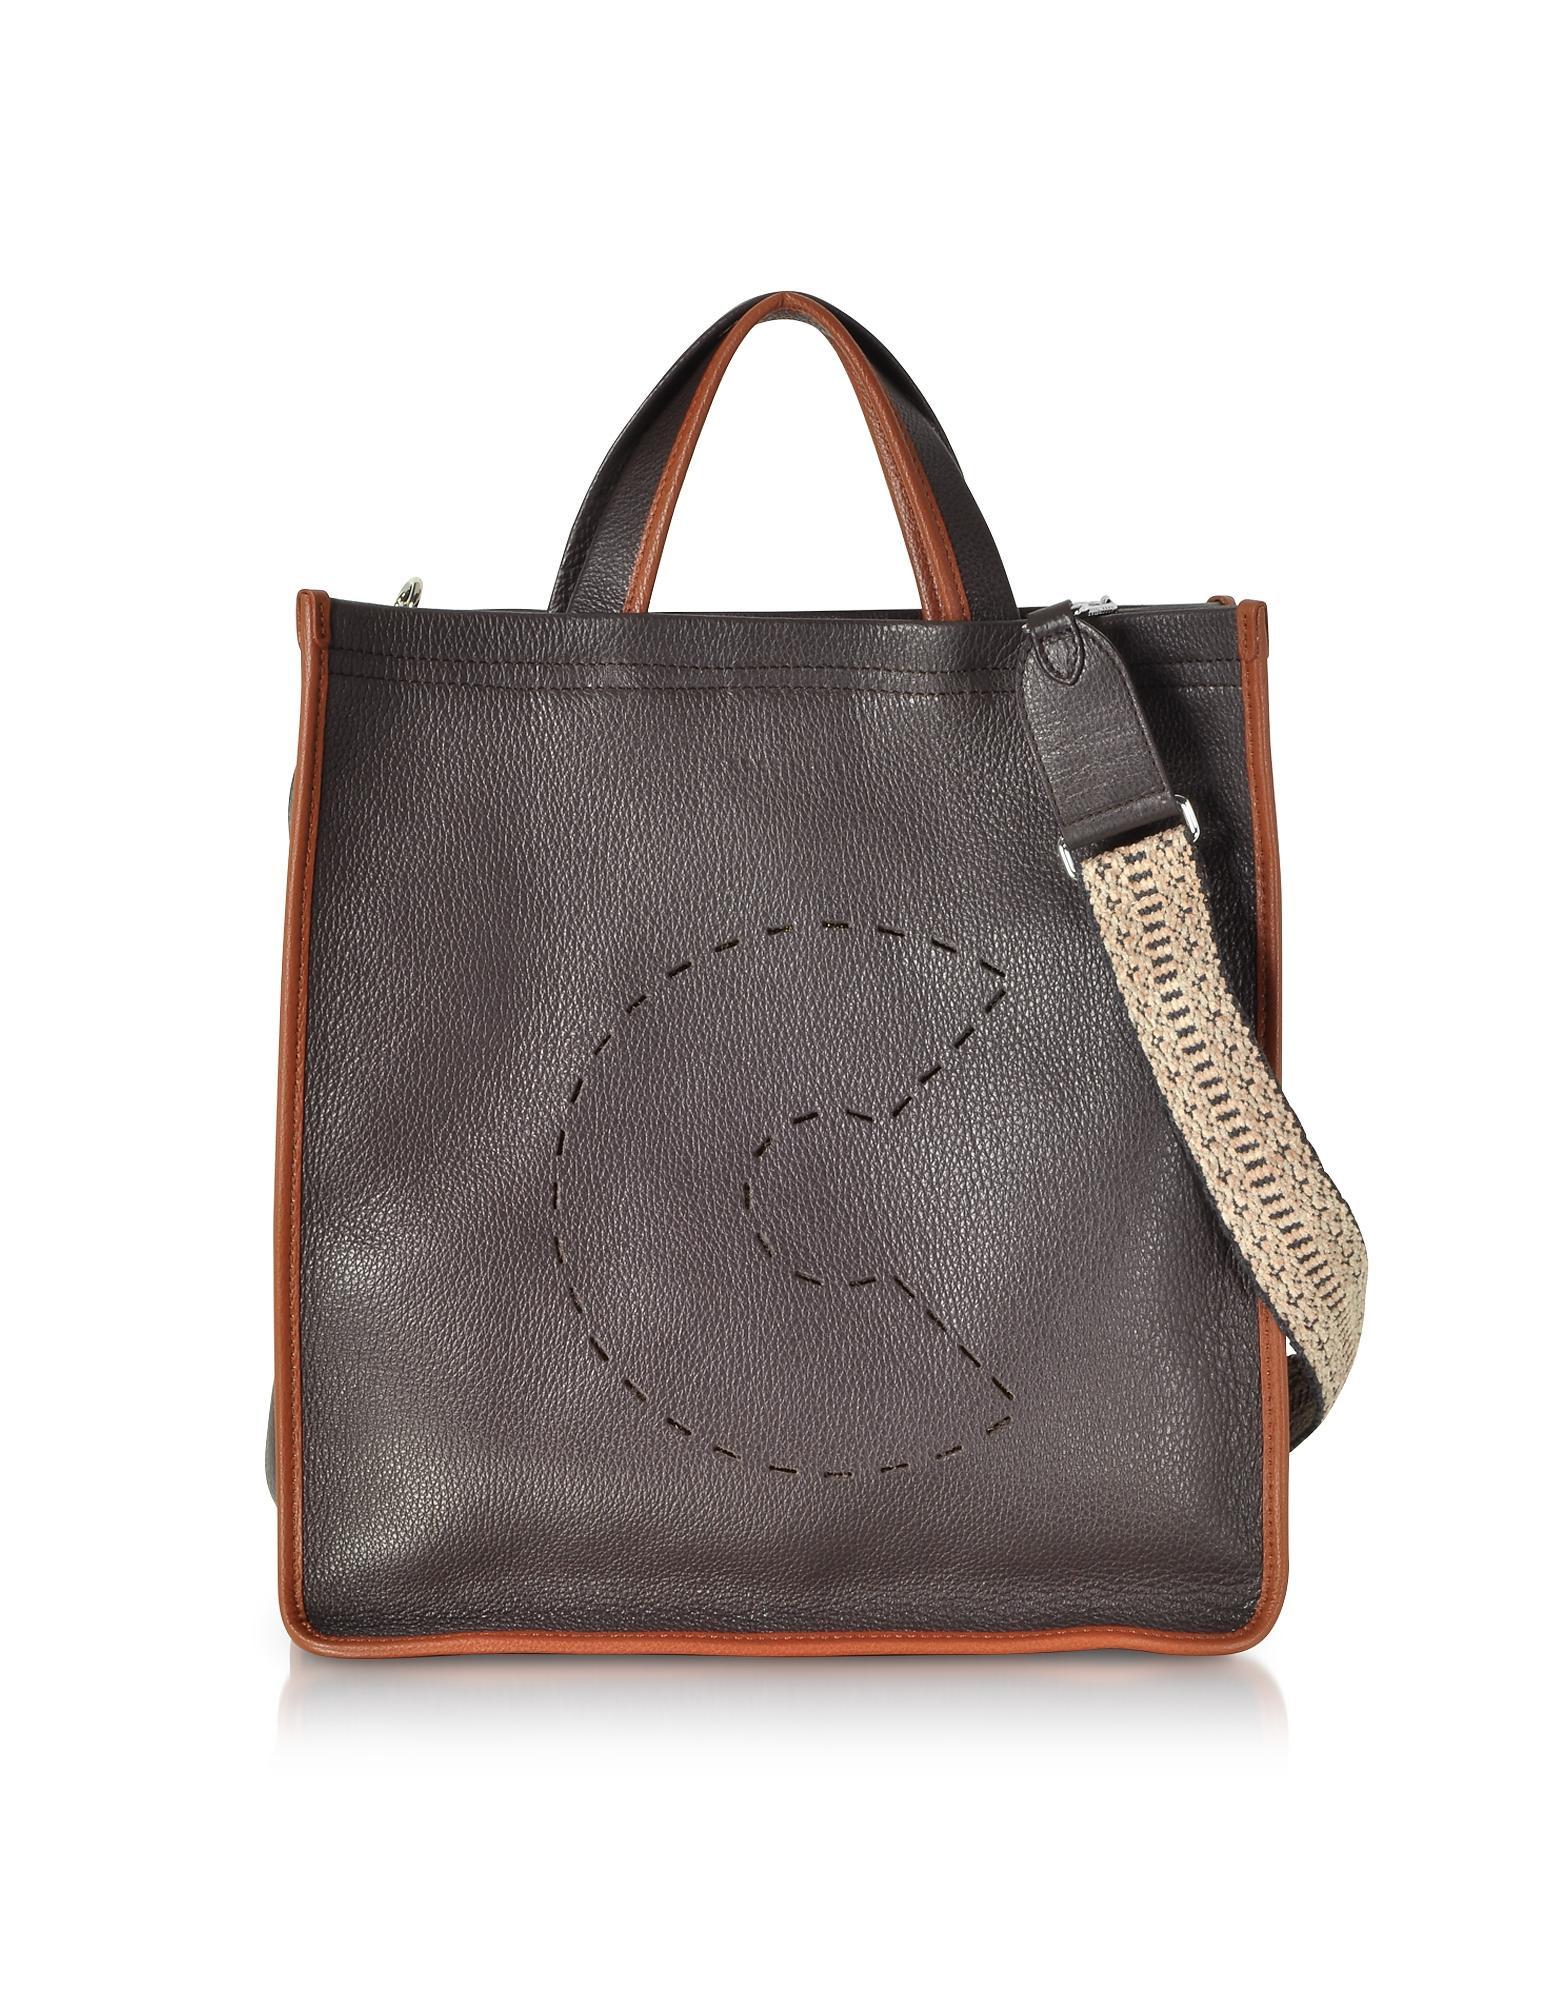 5f381b3d95 Lyst - Coccinelle C Bag Grained Leather Tote in Brown